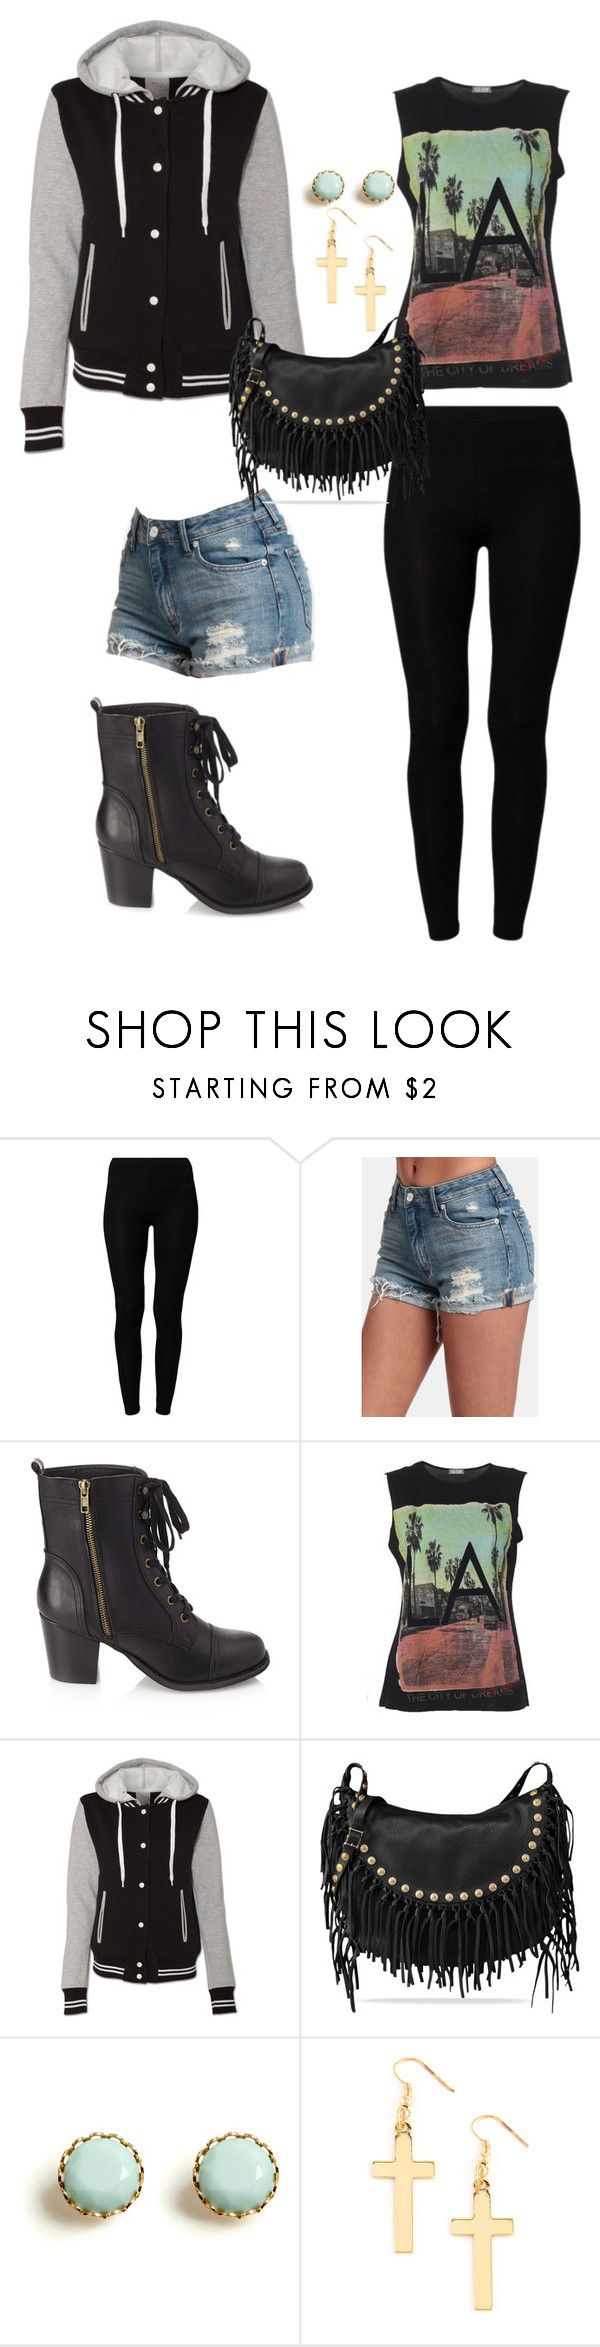 """""""Maya Hart Inspired Outfit"""" by sabrinadesigner ❤ liked on Polyvore featuring American Vintage, Forever 21, M:UK, Valentino, Warehouse, women's clothing, women, female, woman and misses"""